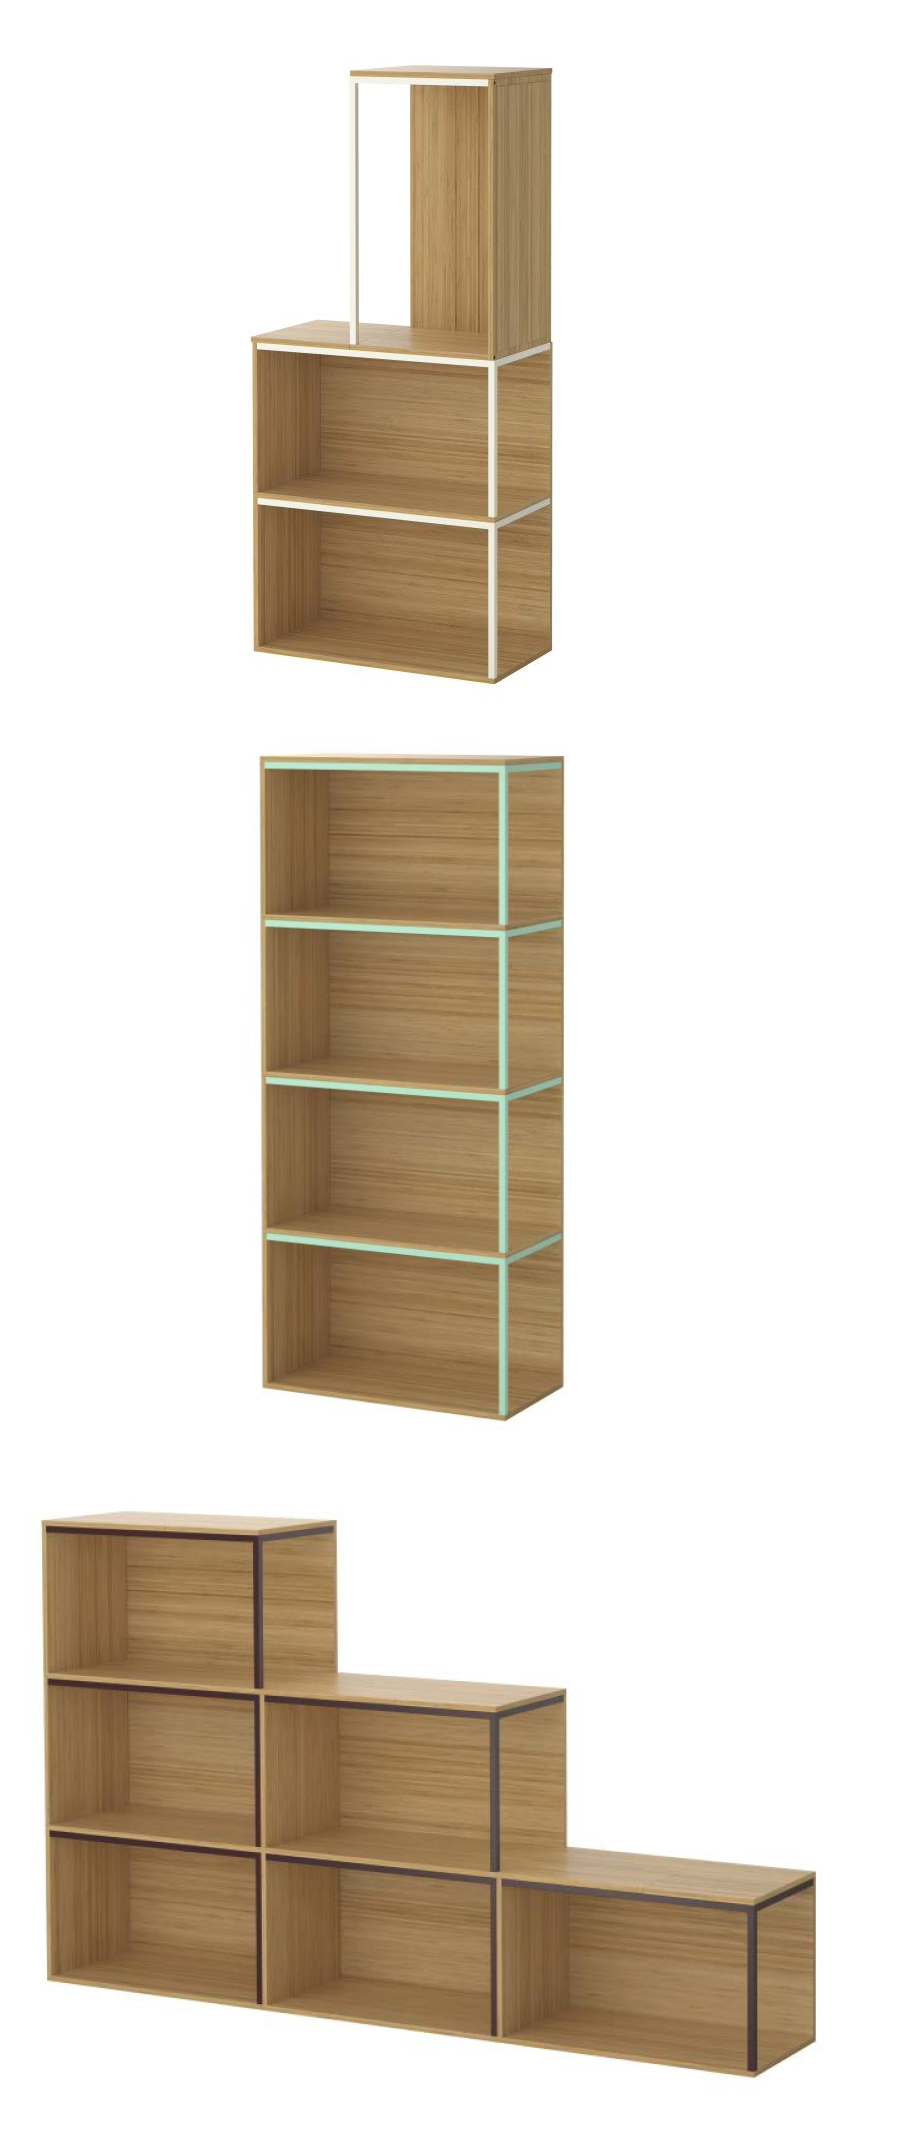 ikea ps 2014 storage modules create your own unique combination for storage and display by combining modules and lids any way you like